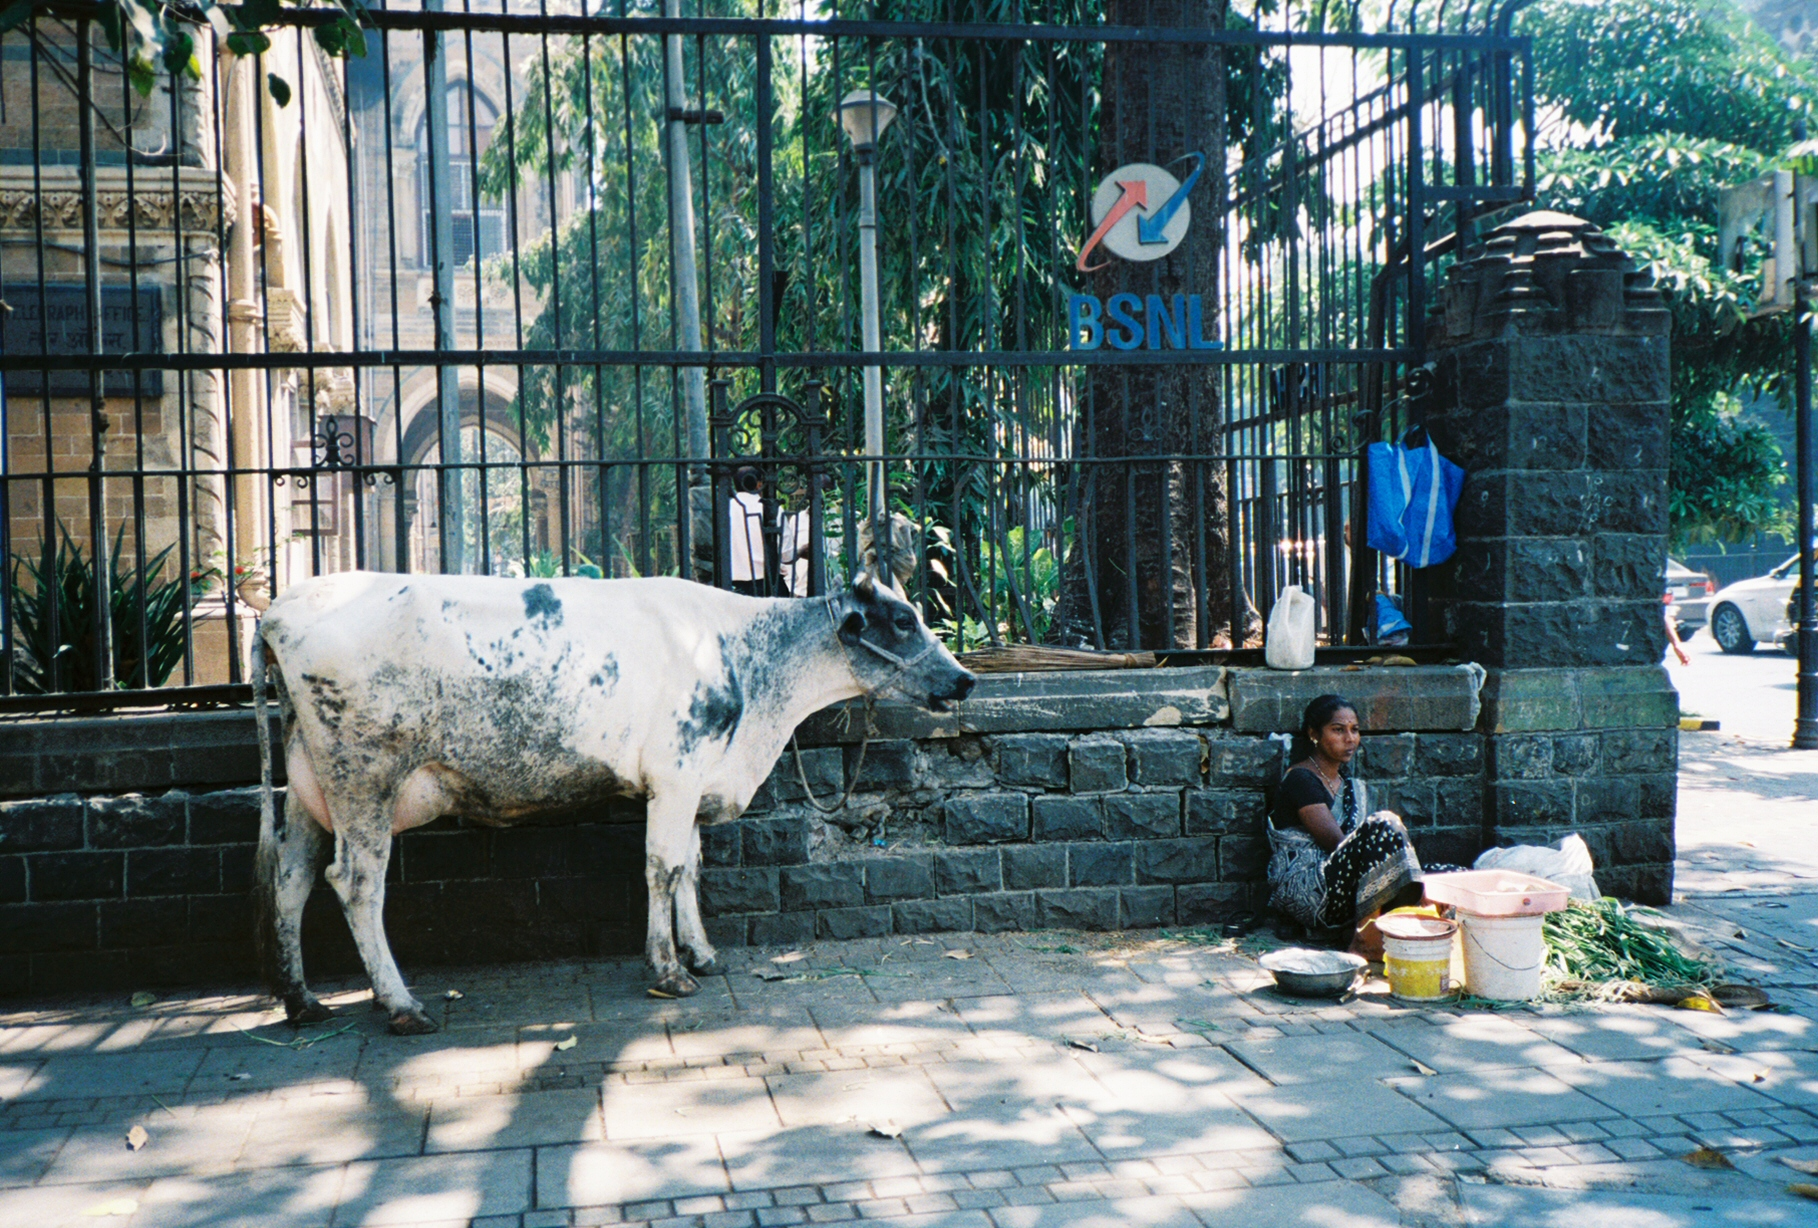 cow_mumbai_india_march_2013